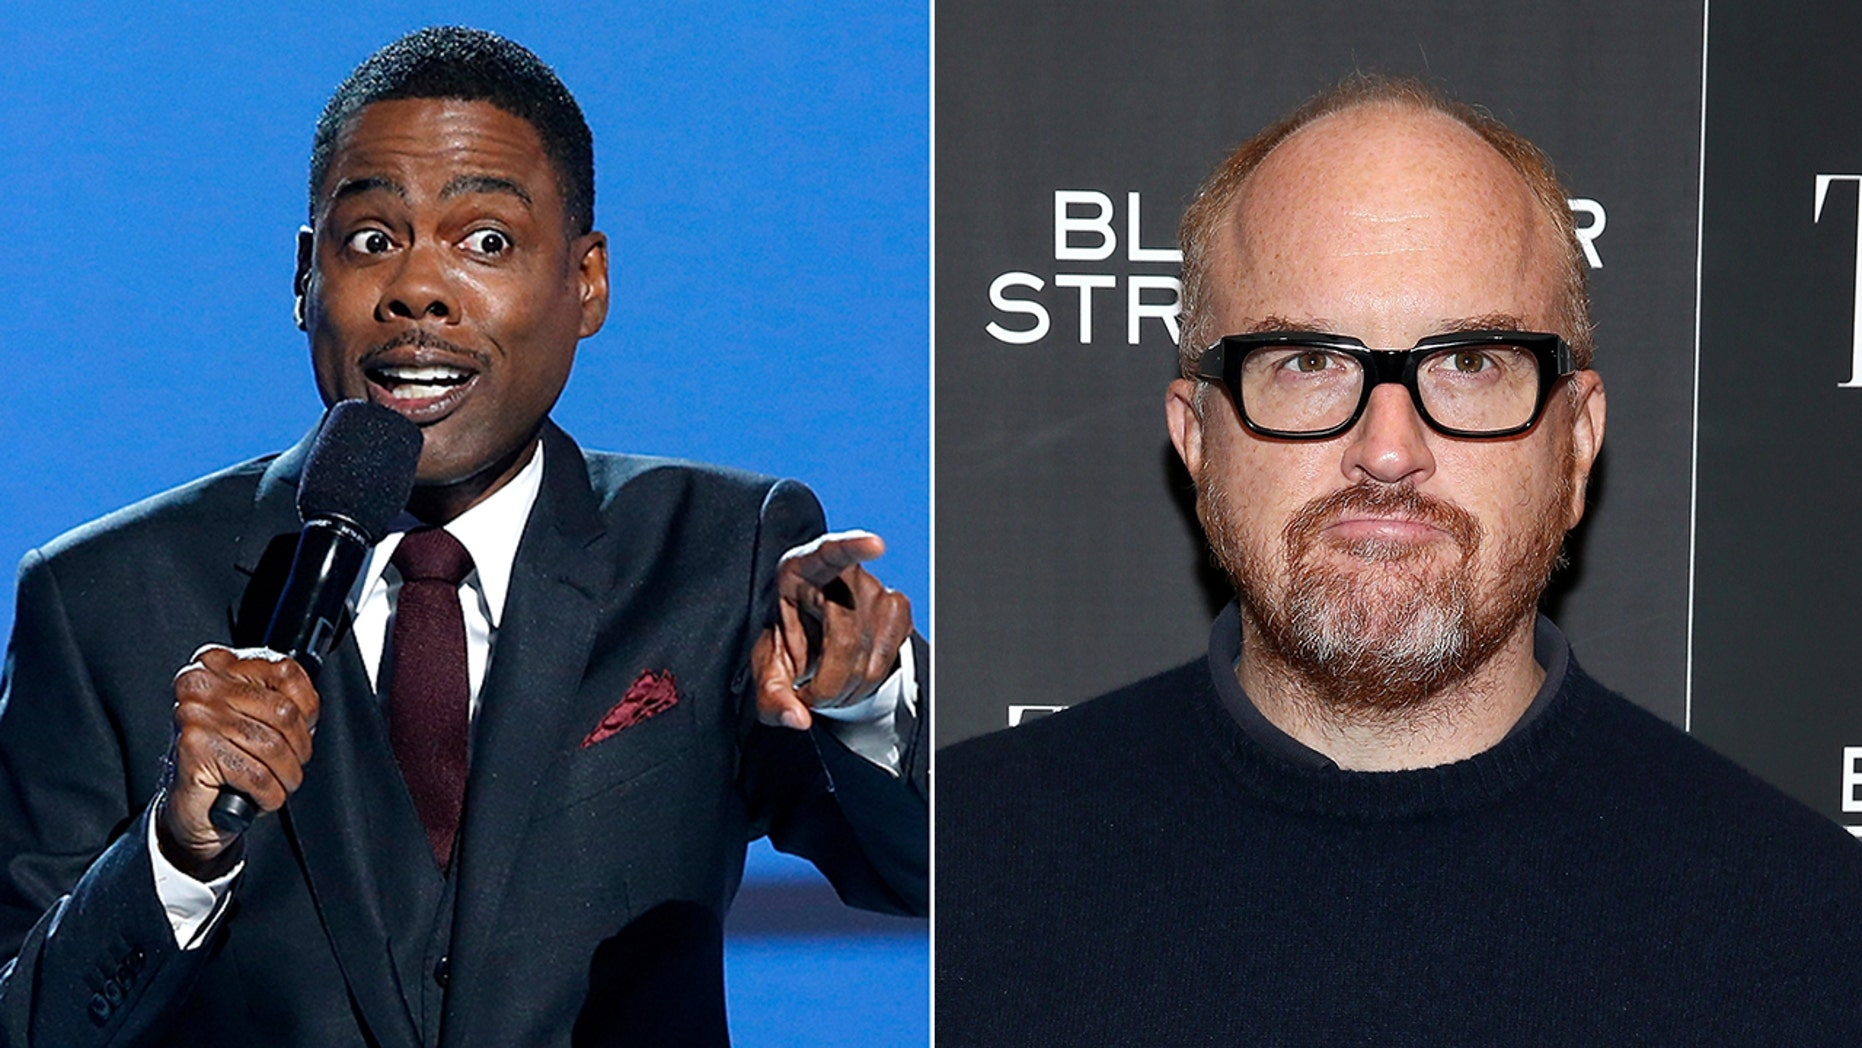 Chris Rock,left, showed up to support fellow comedian Louis C.K. during his recent performance on October 24, 2018.